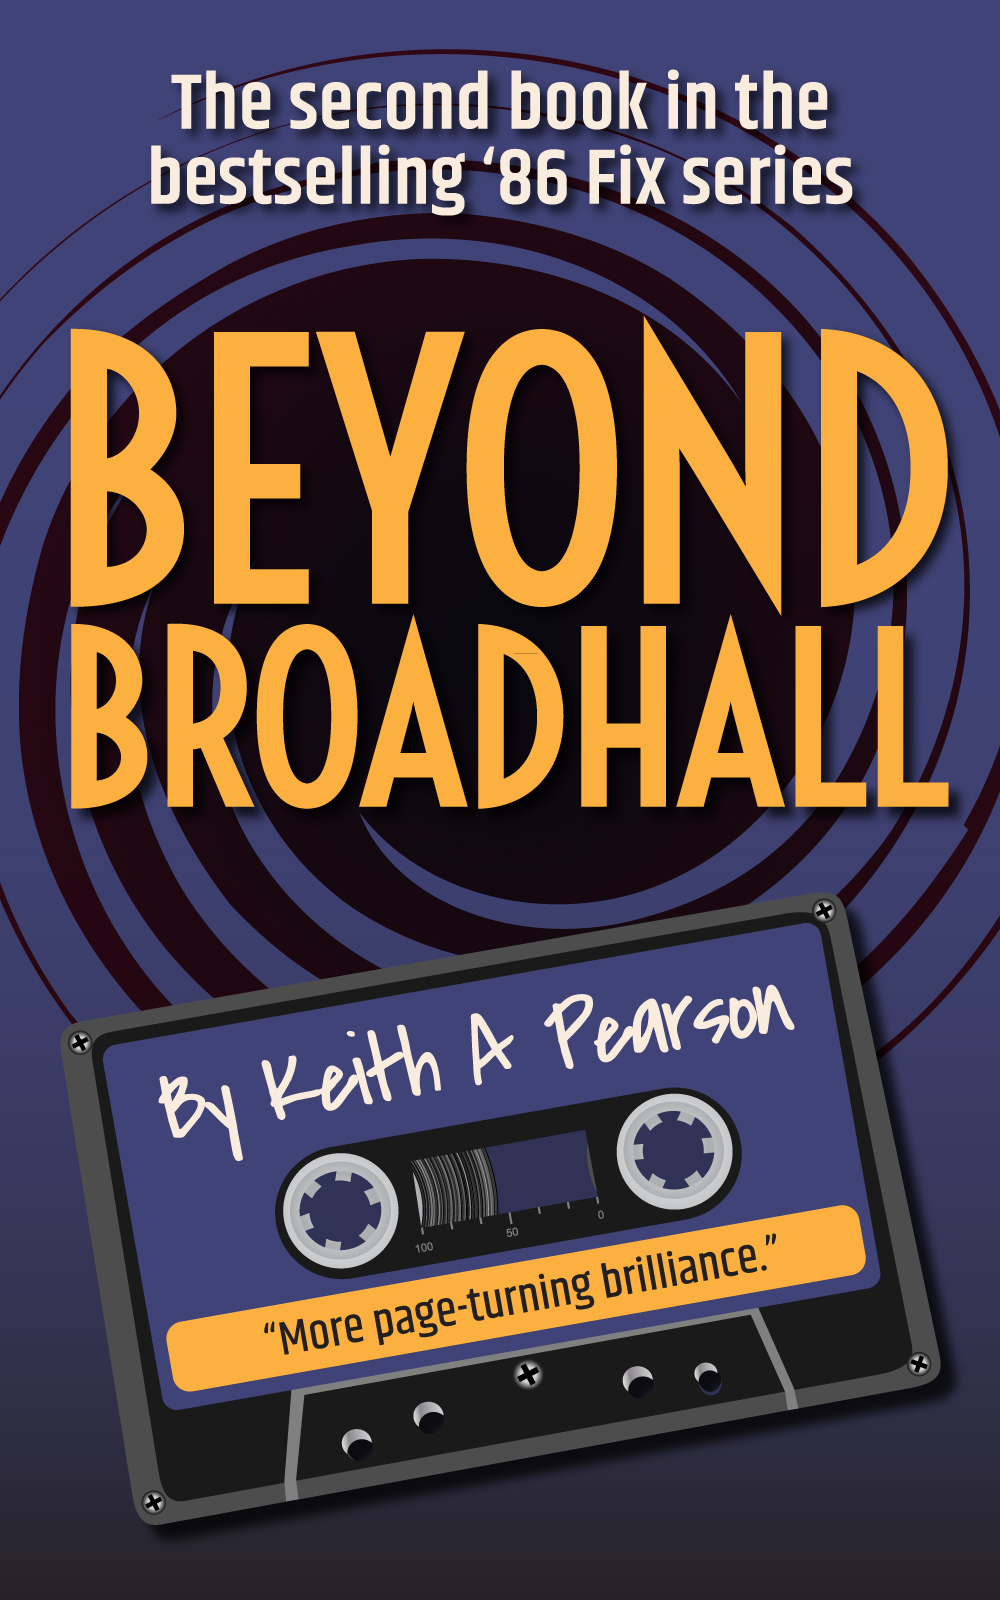 Beyond Broadhall by Keith A Pearson